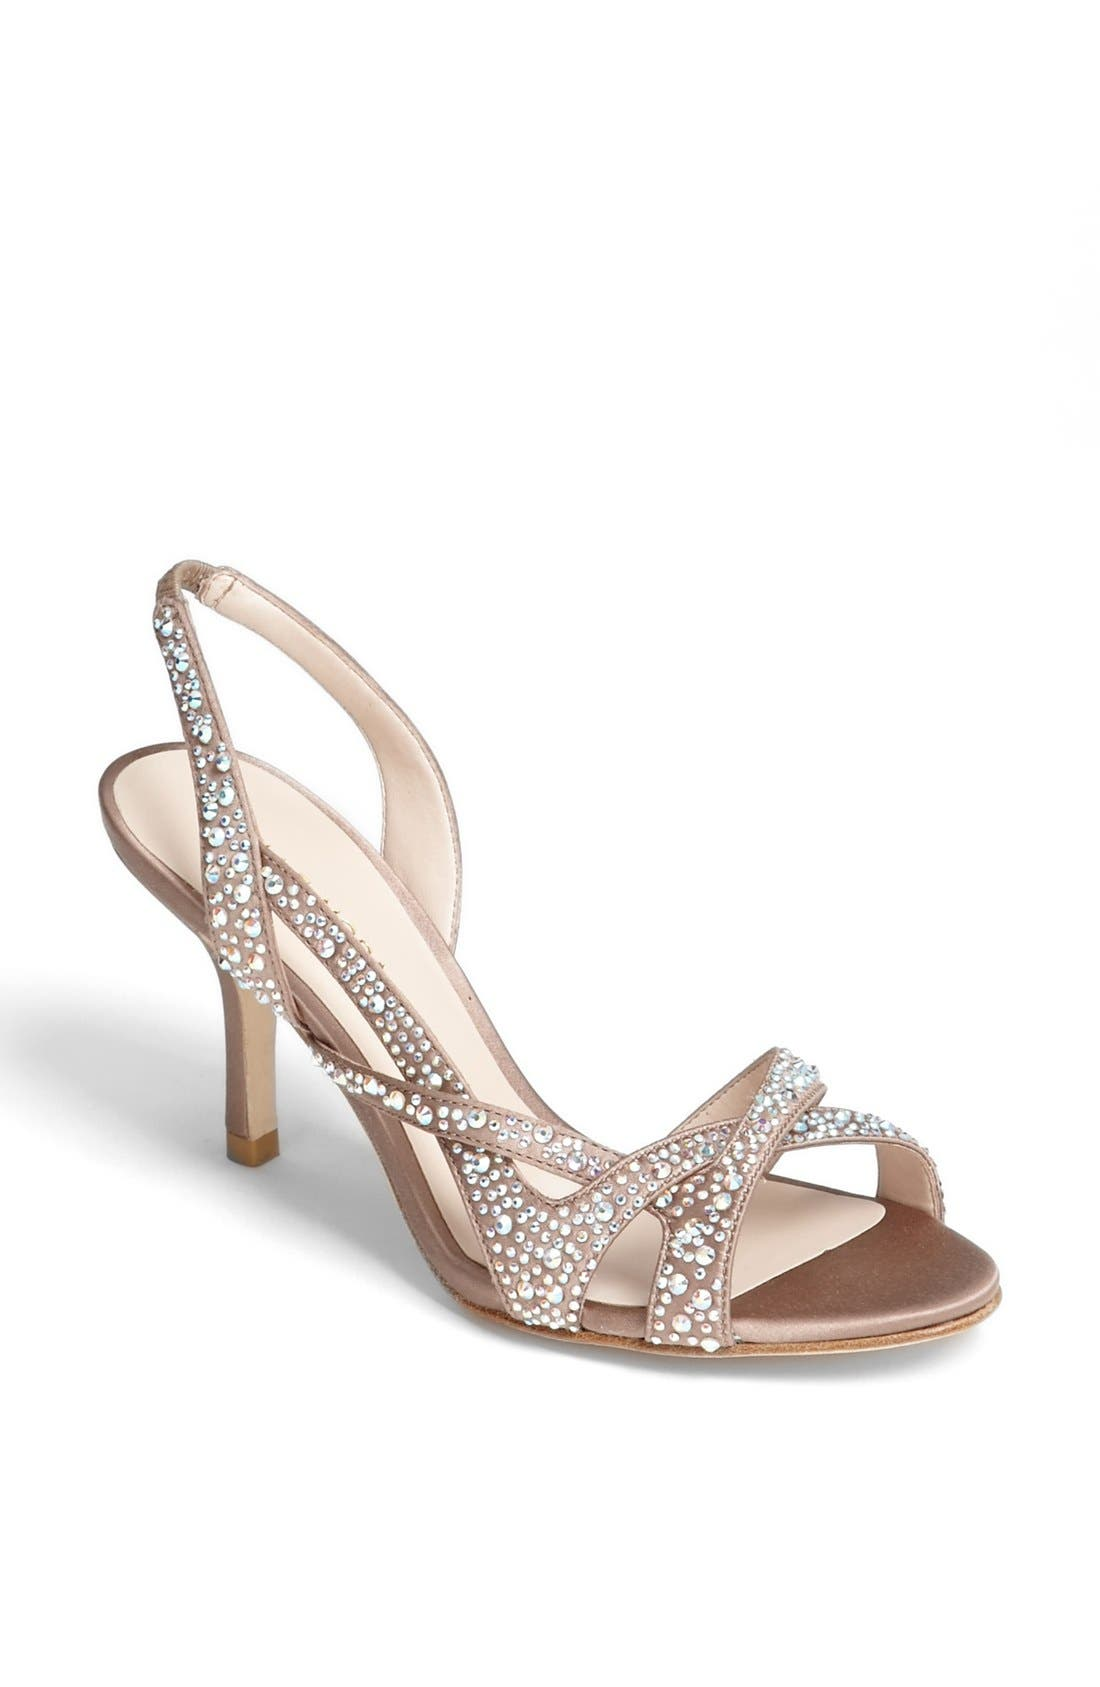 Alternate Image 1 Selected - Pelle Moda 'Gretel' Sandal